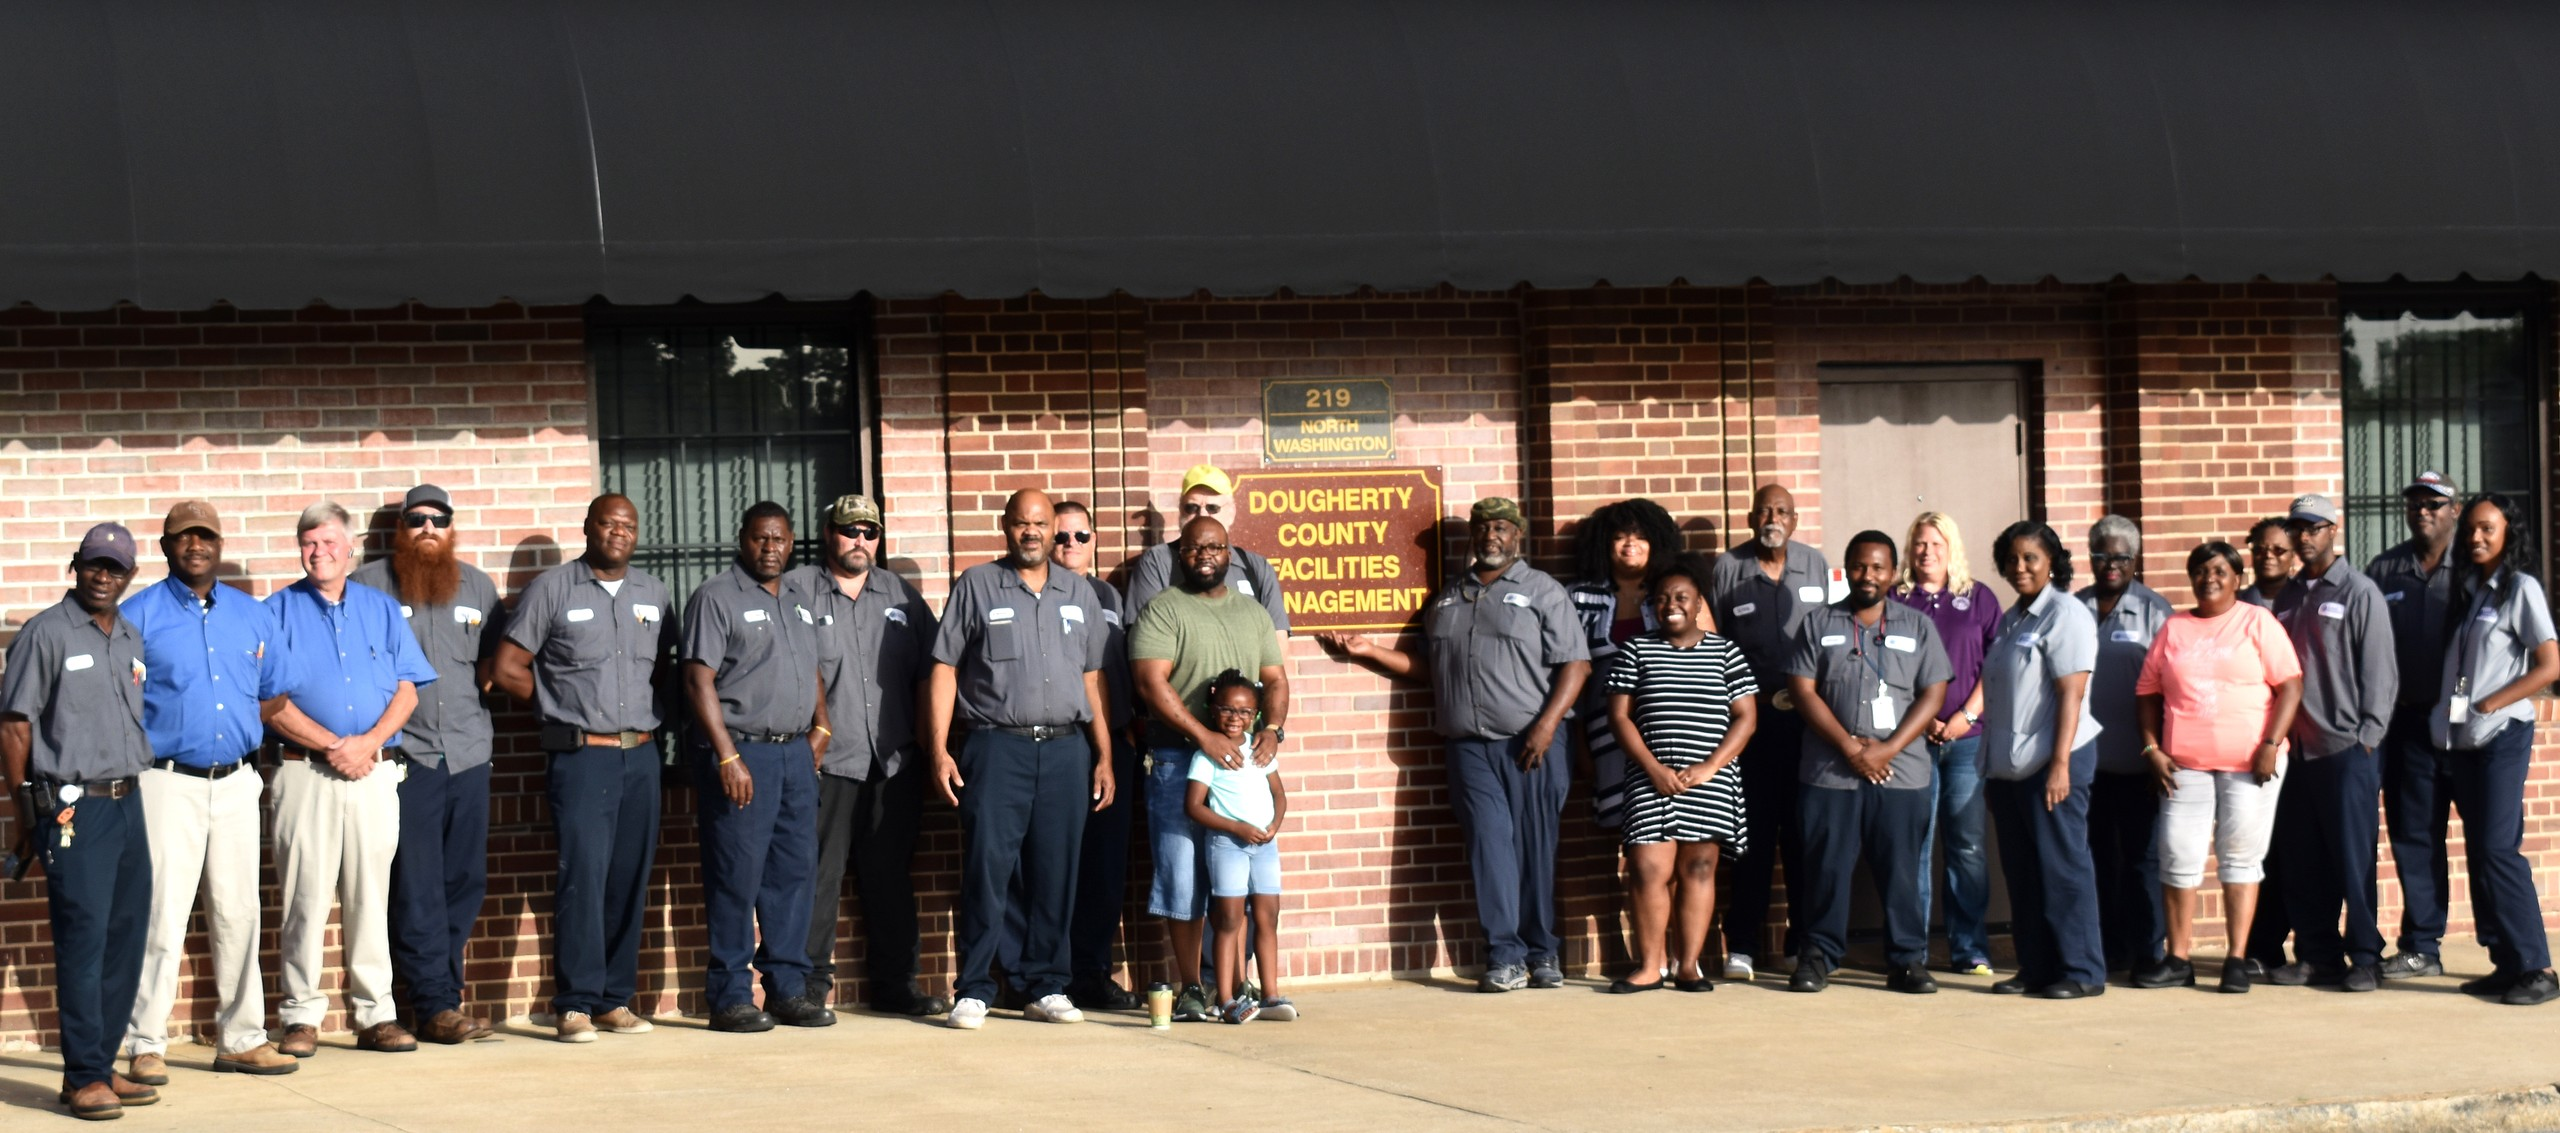 Dougherty County Facilities Management Team Group Picture of Staff